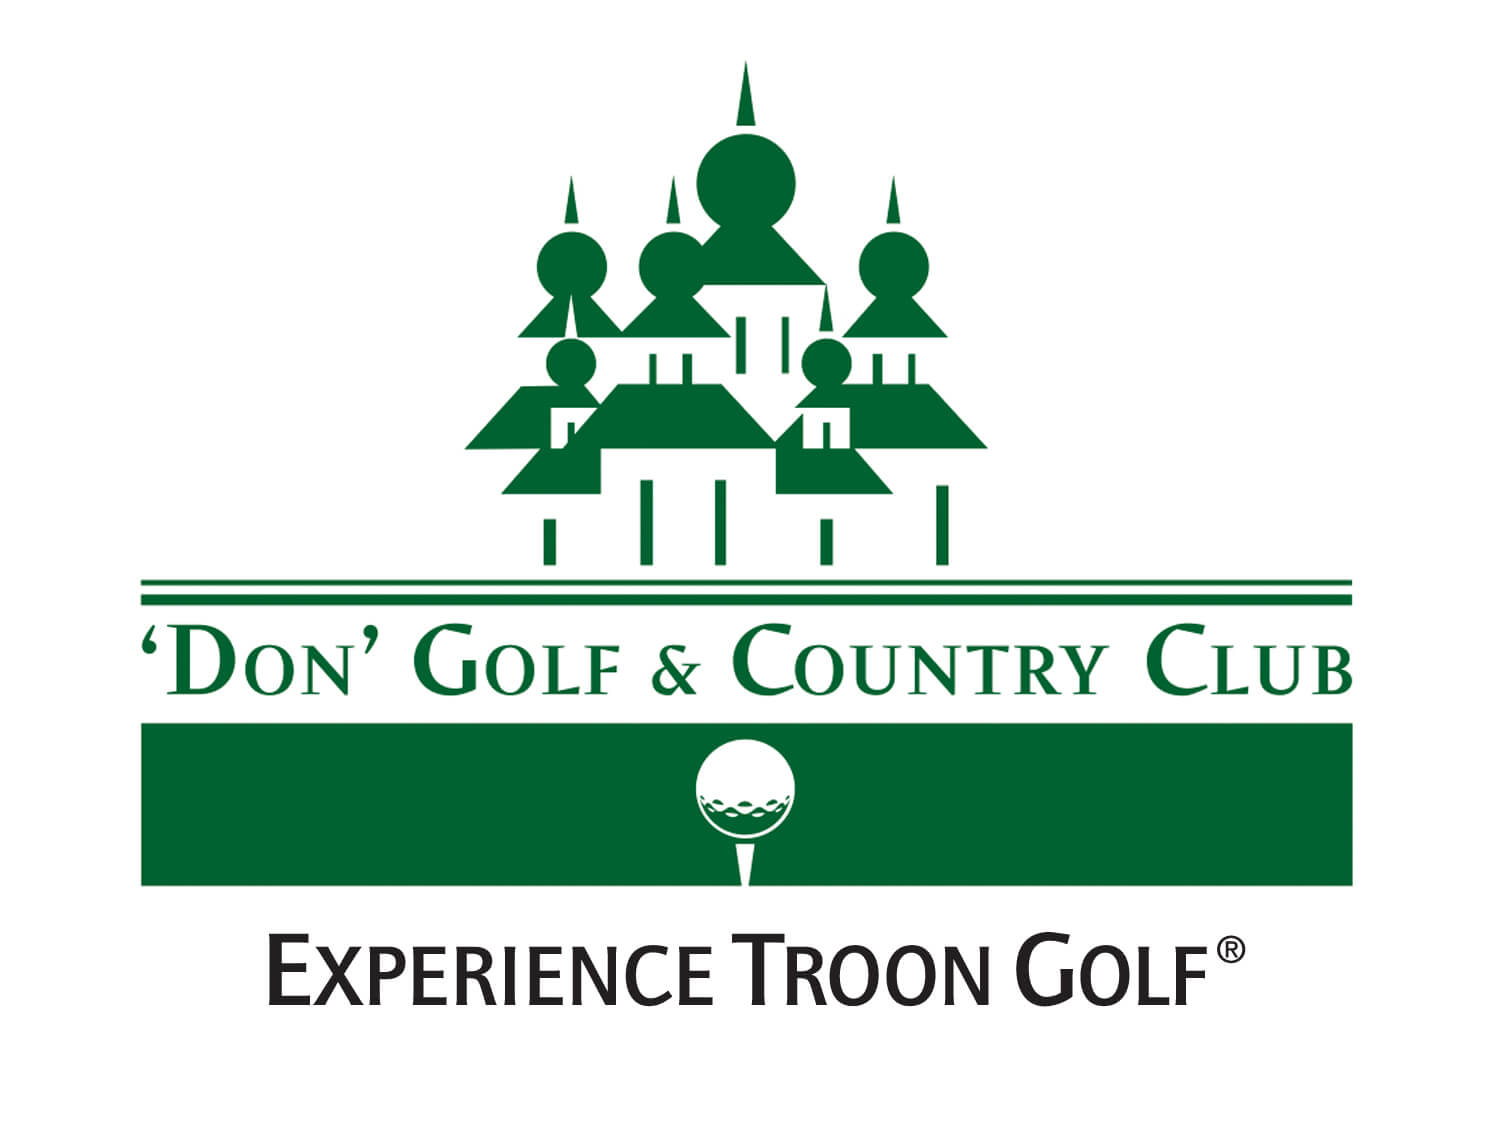 Don Golf & Country Club